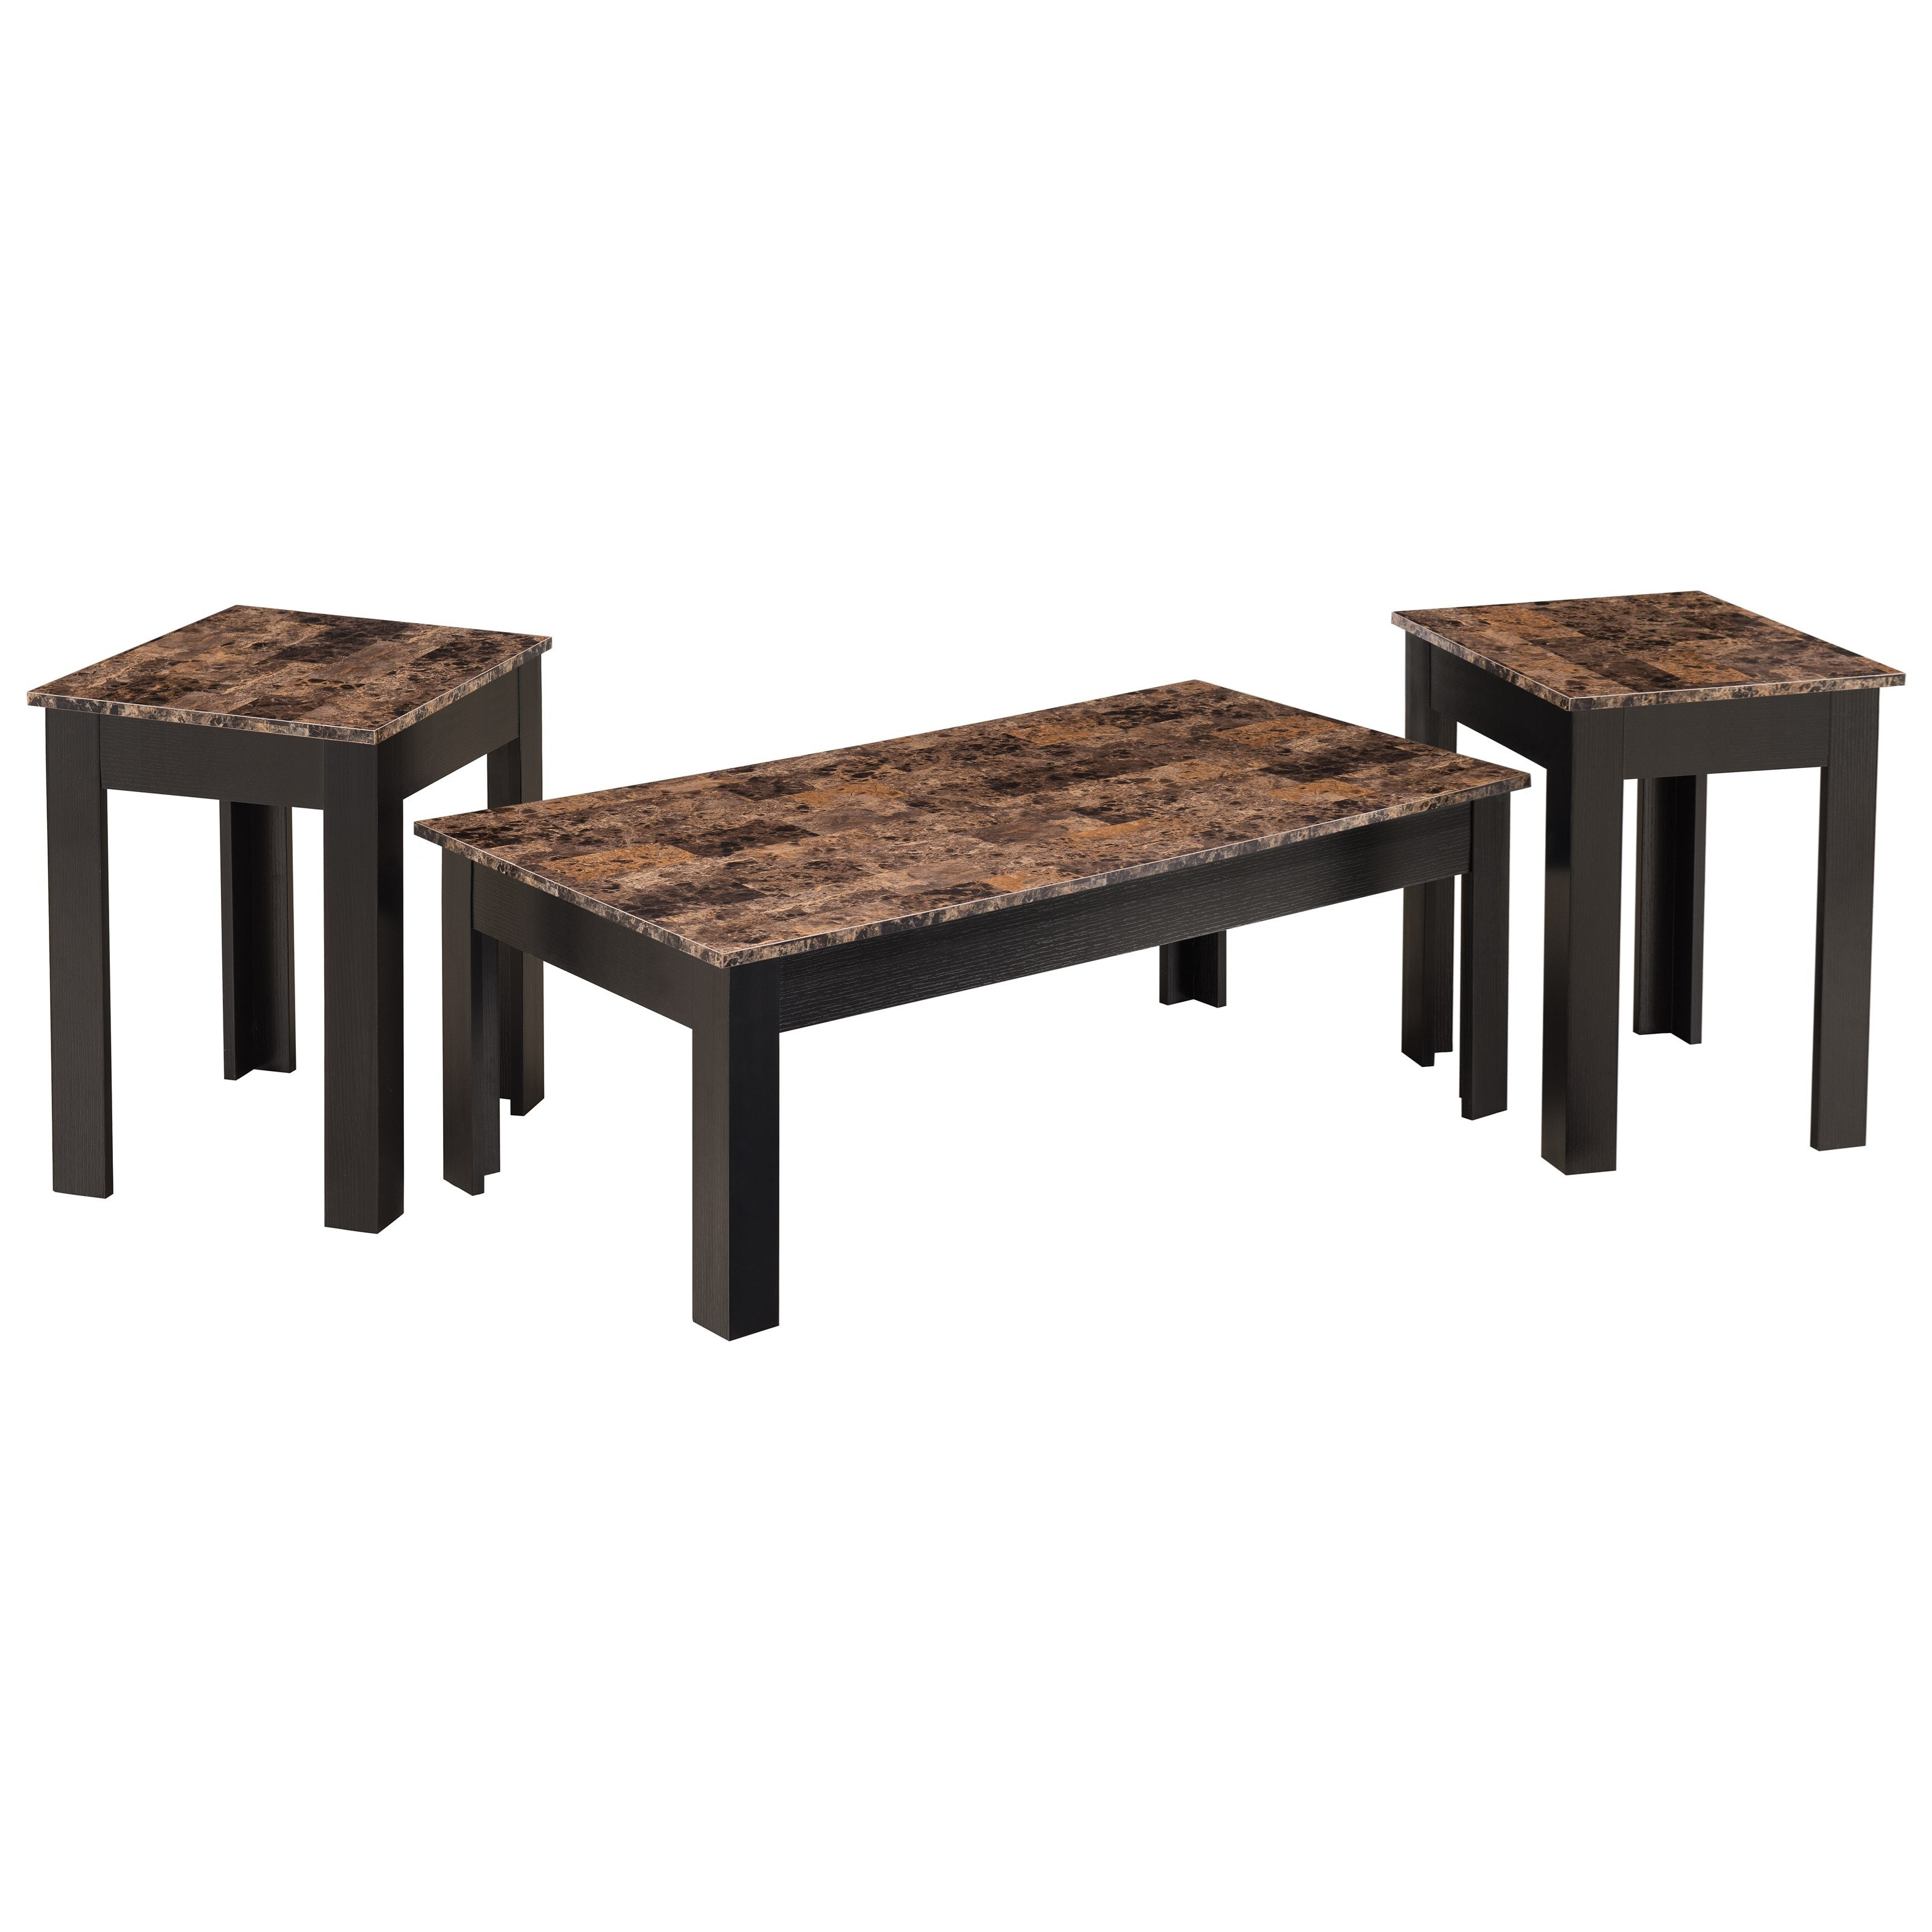 Simmons Upholstery 7108 3 Piece Occasional Table Set - Item Number: 7108-43